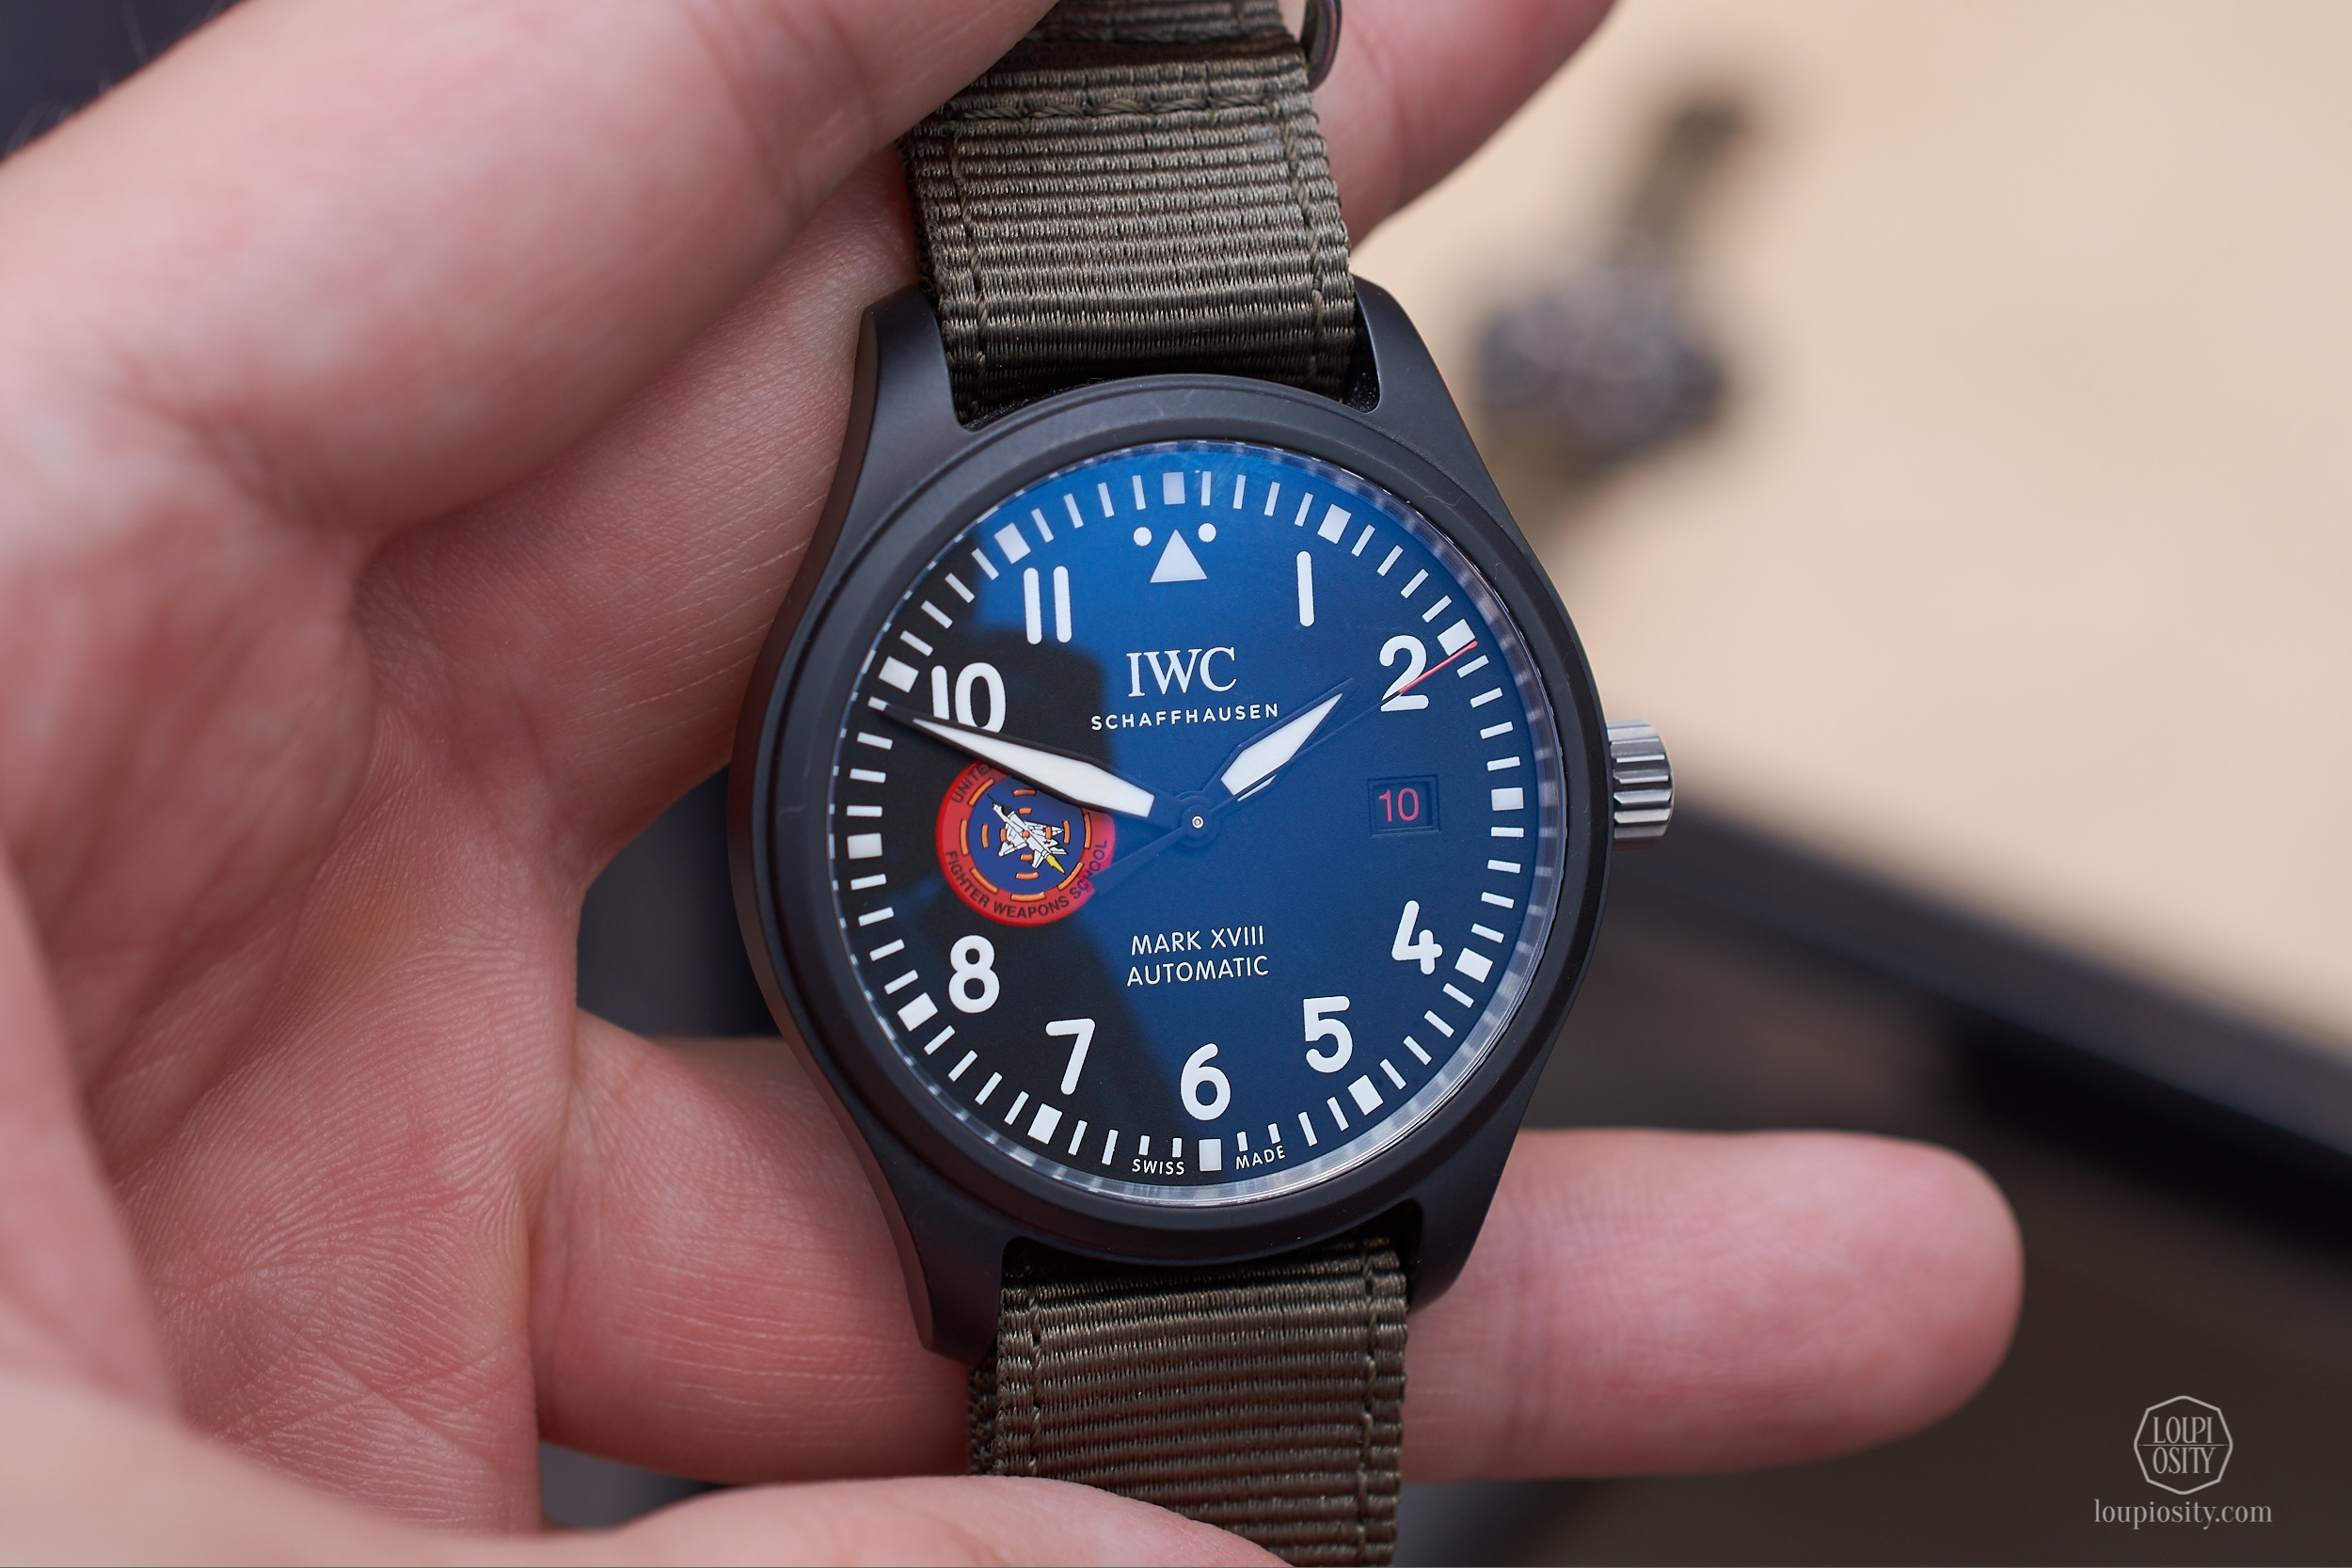 Pilot's Watch Chronograph  'Strike Fighter Tactics Instructor'